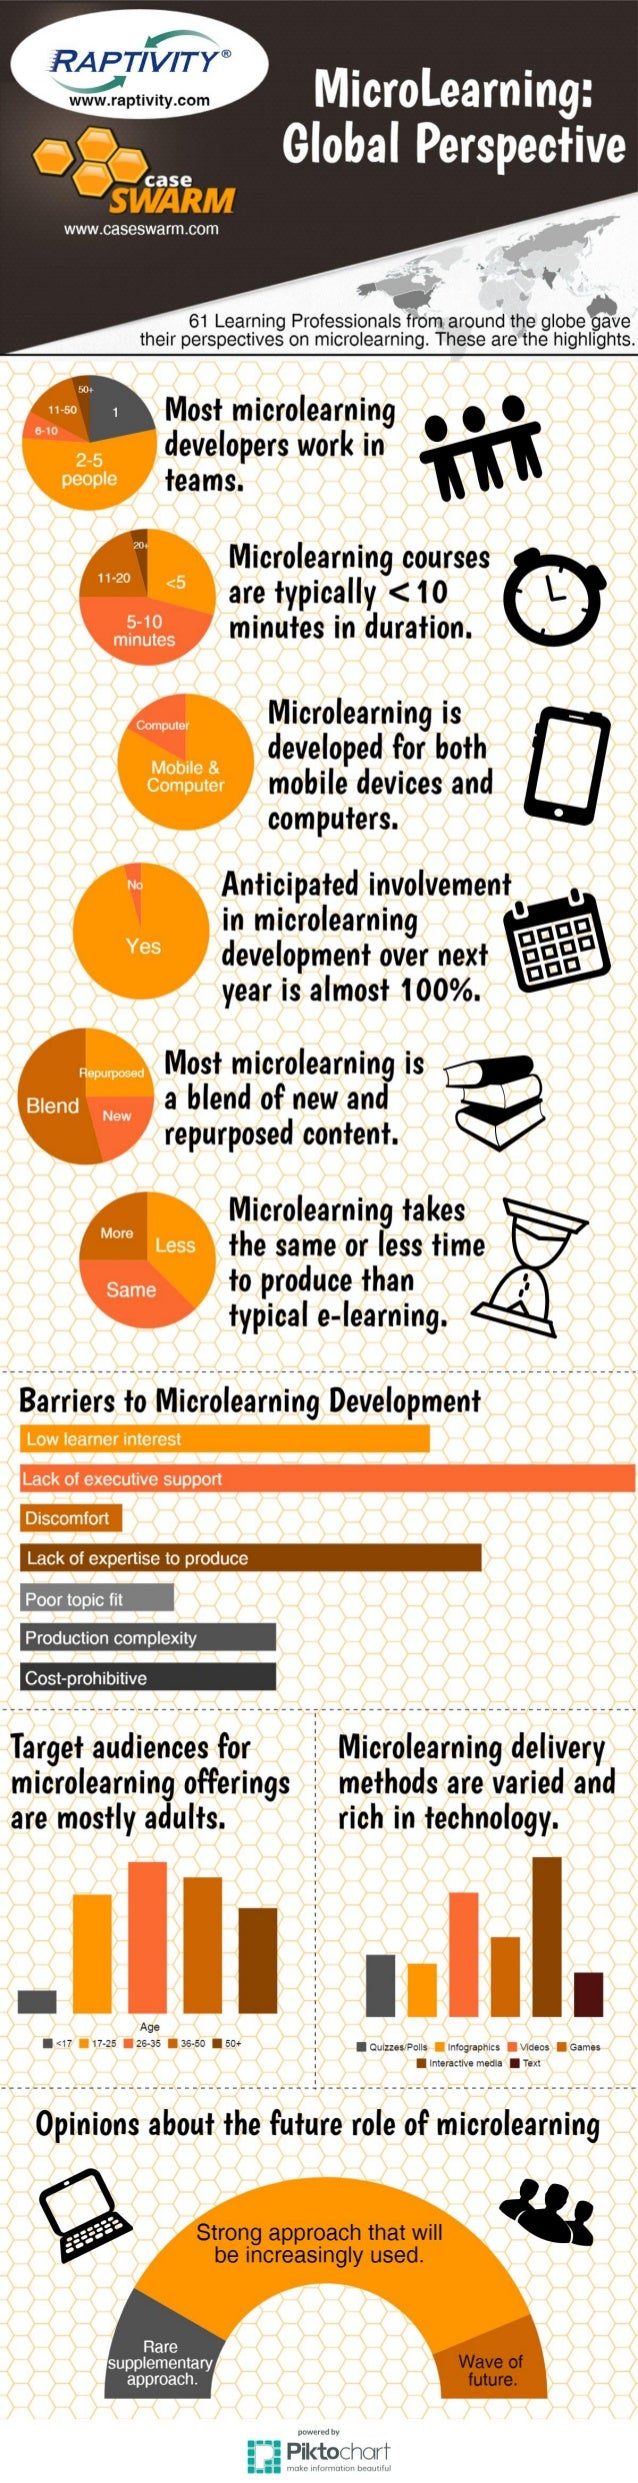 Infographic: Micro-Learning, Global Perspective